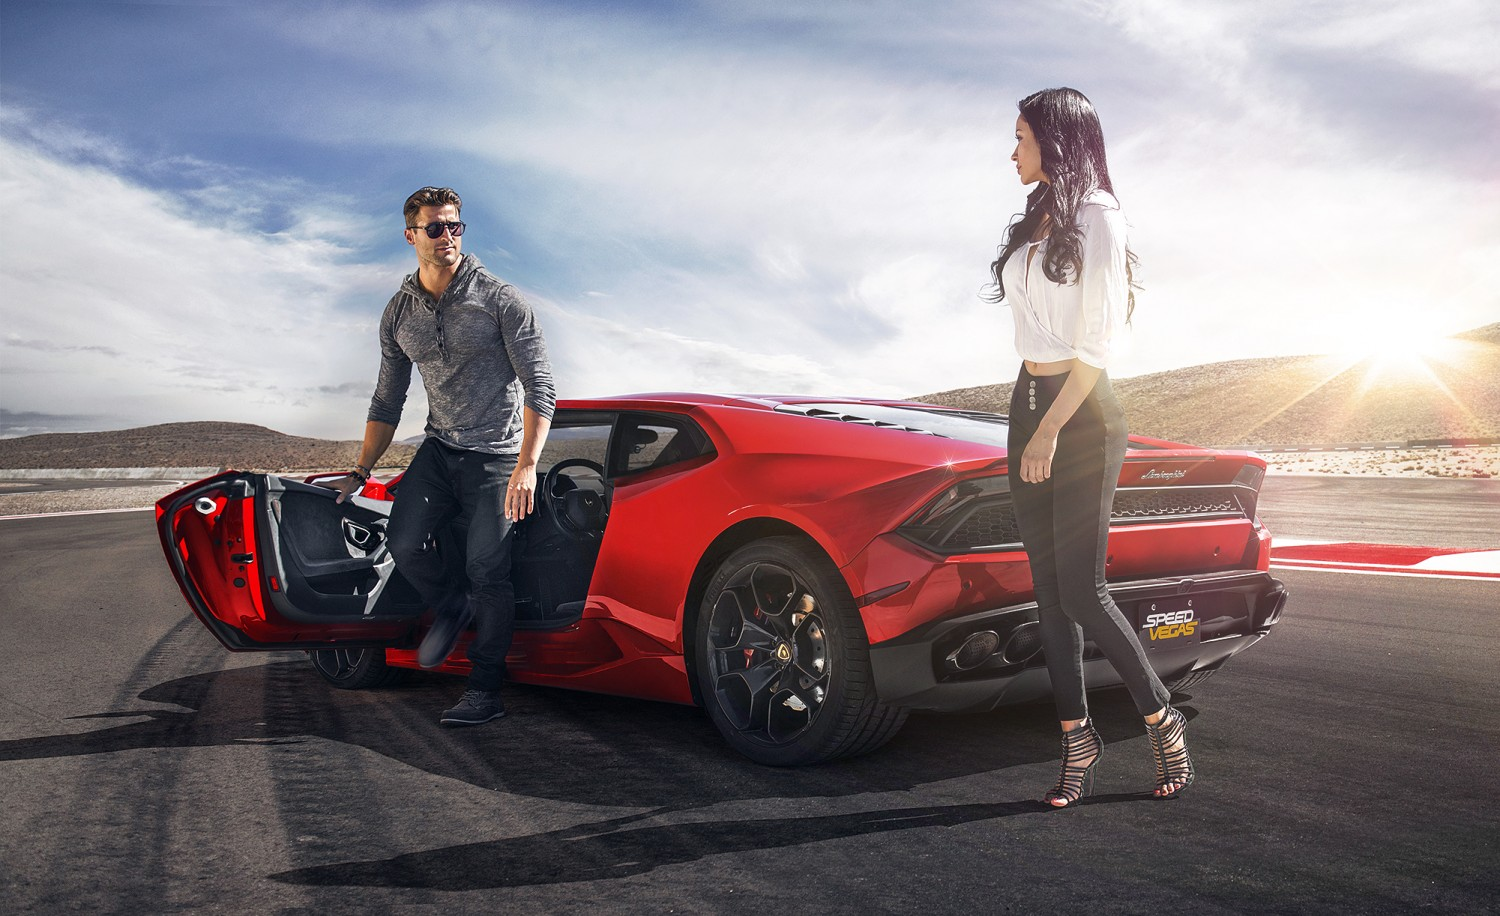 carolbly las magnificent design ideas at vegas com car drive with interior ferrari about experience remodel